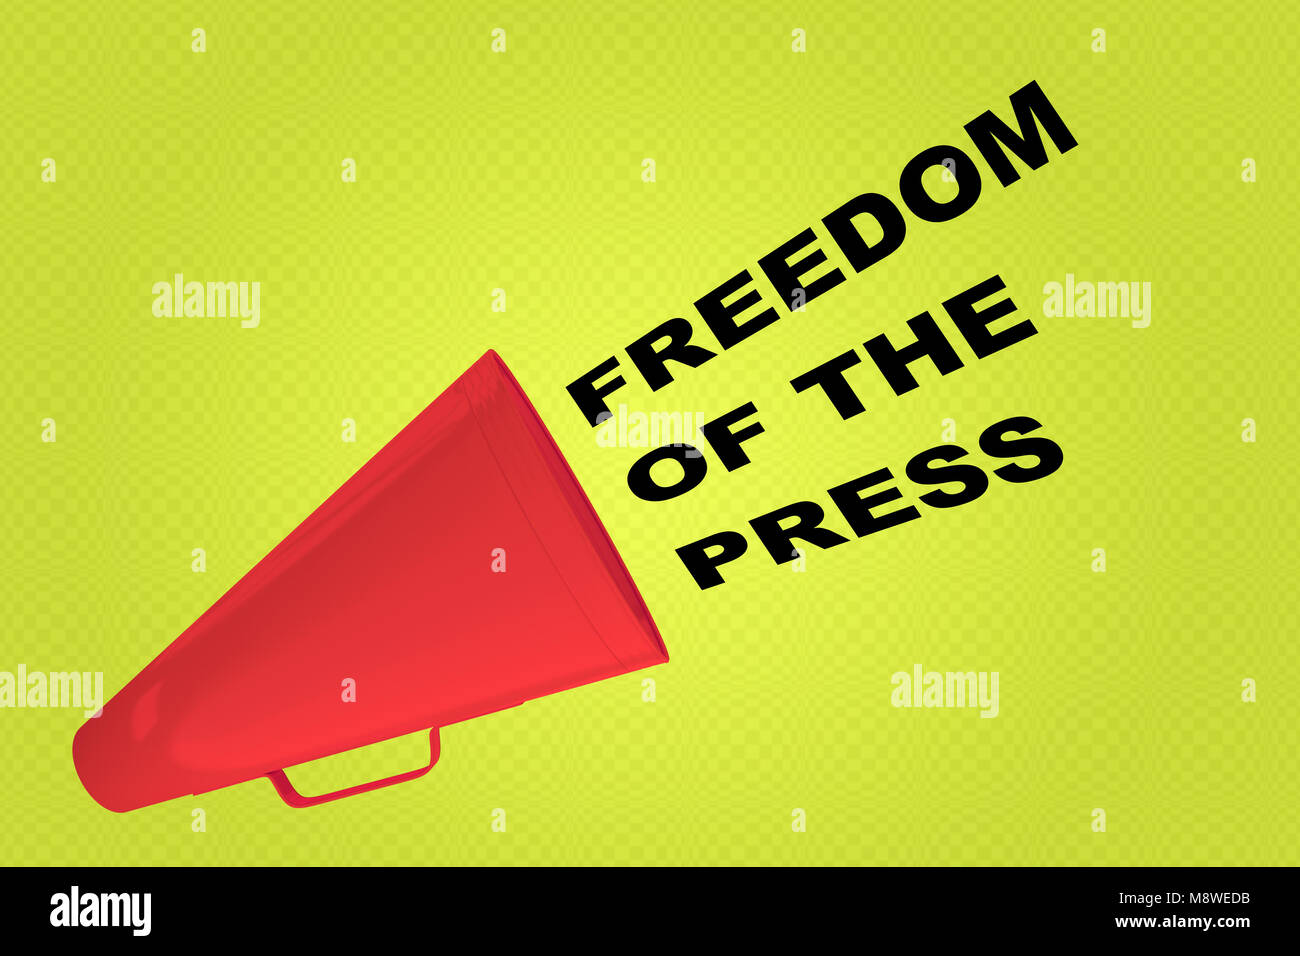 3D illustration of FREEDOM OF THE PRESS title flowing from a loudspeaker - Stock Image